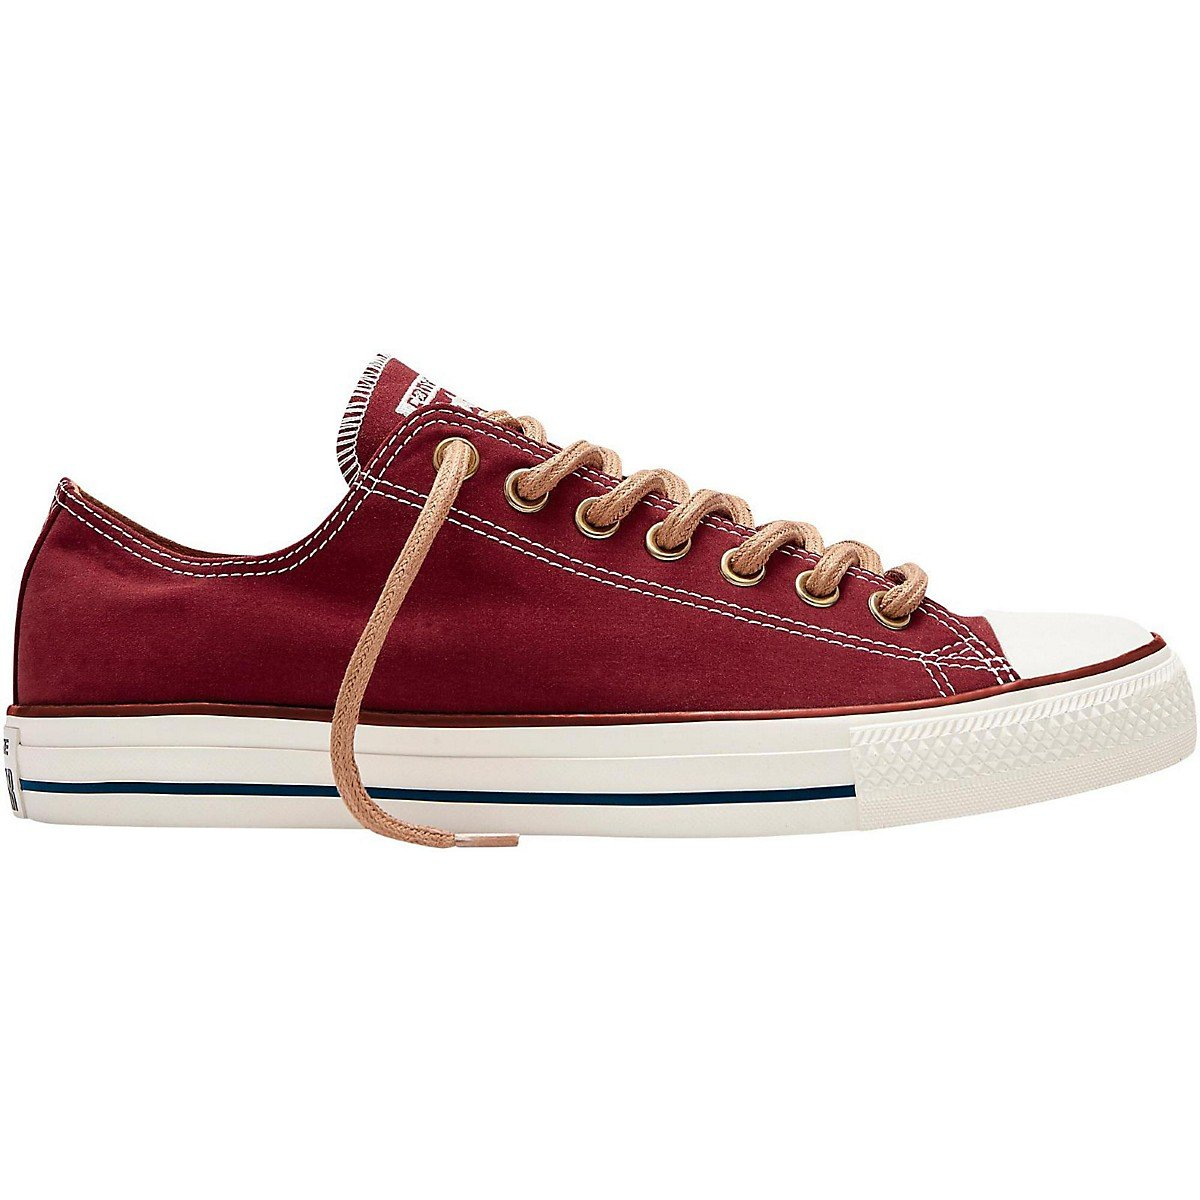 Converse Mens Chuck Taylor All Star Peached Canvas Oxford Fashion Sneaker, Back Alley Brick, 7